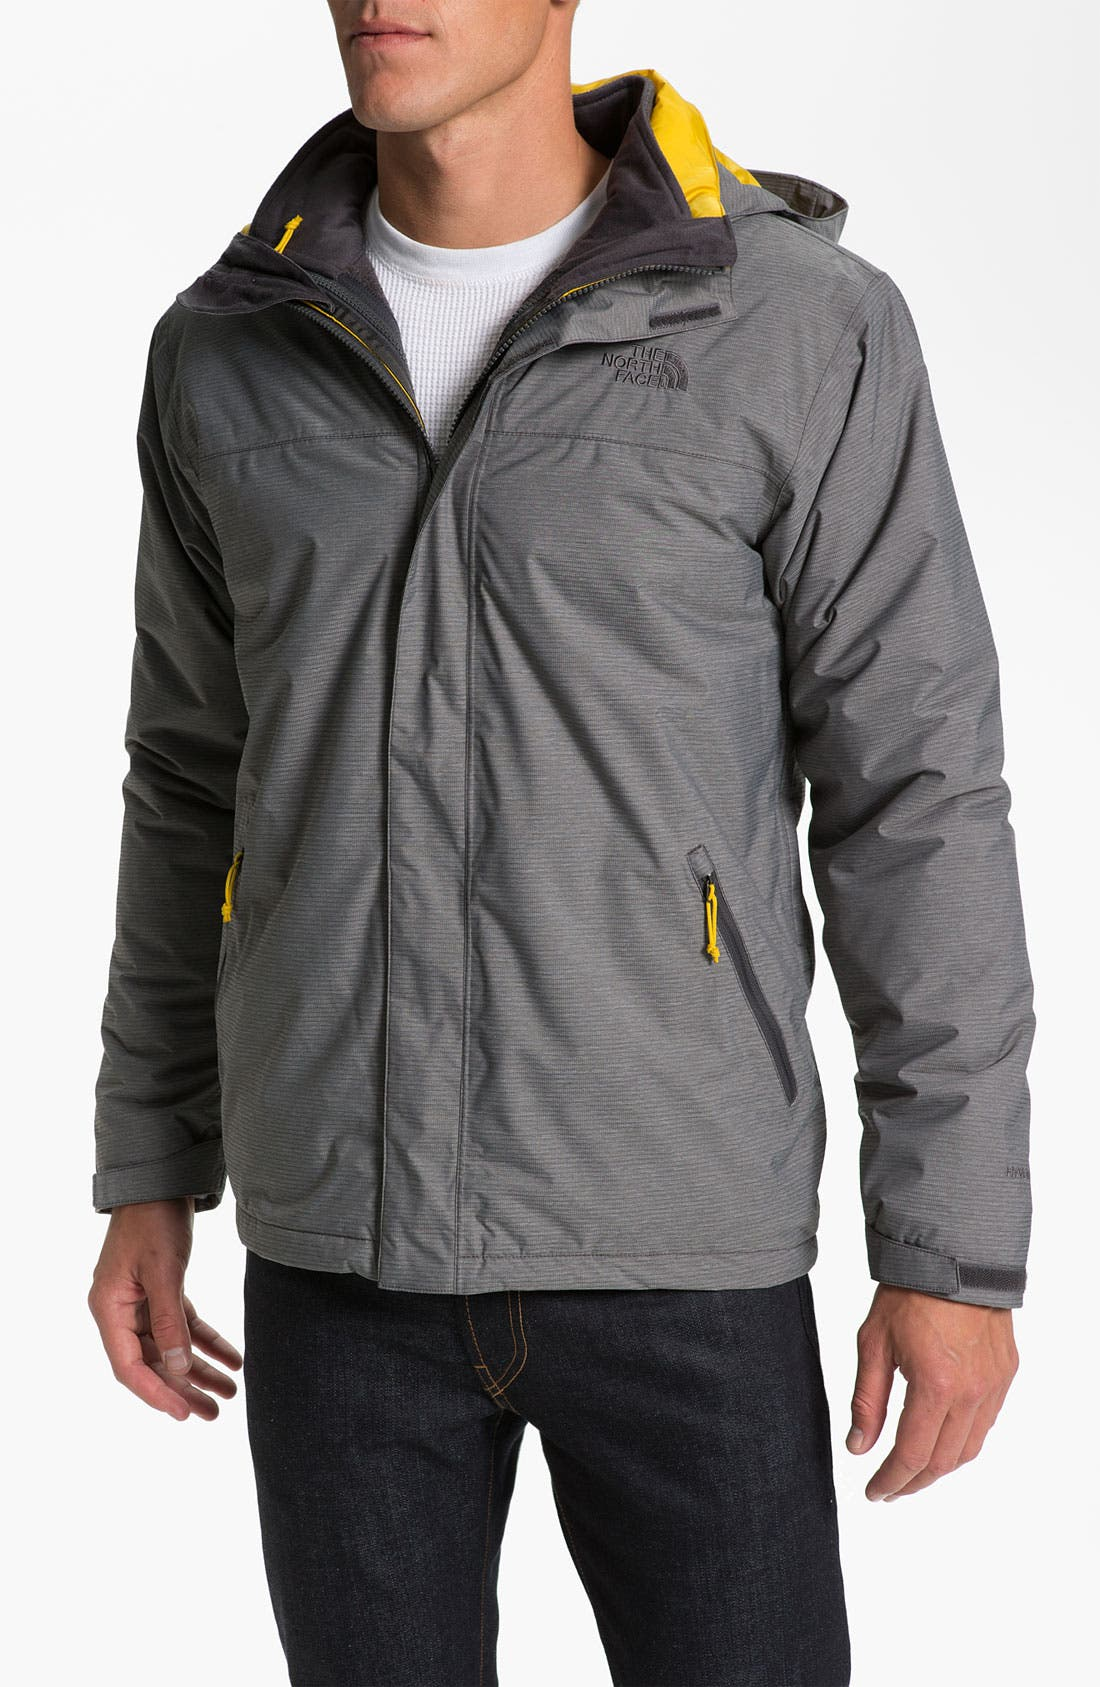 Alternate Image 1 Selected - The North Face 'Flathead' TriClimate® 3-in-1 Jacket